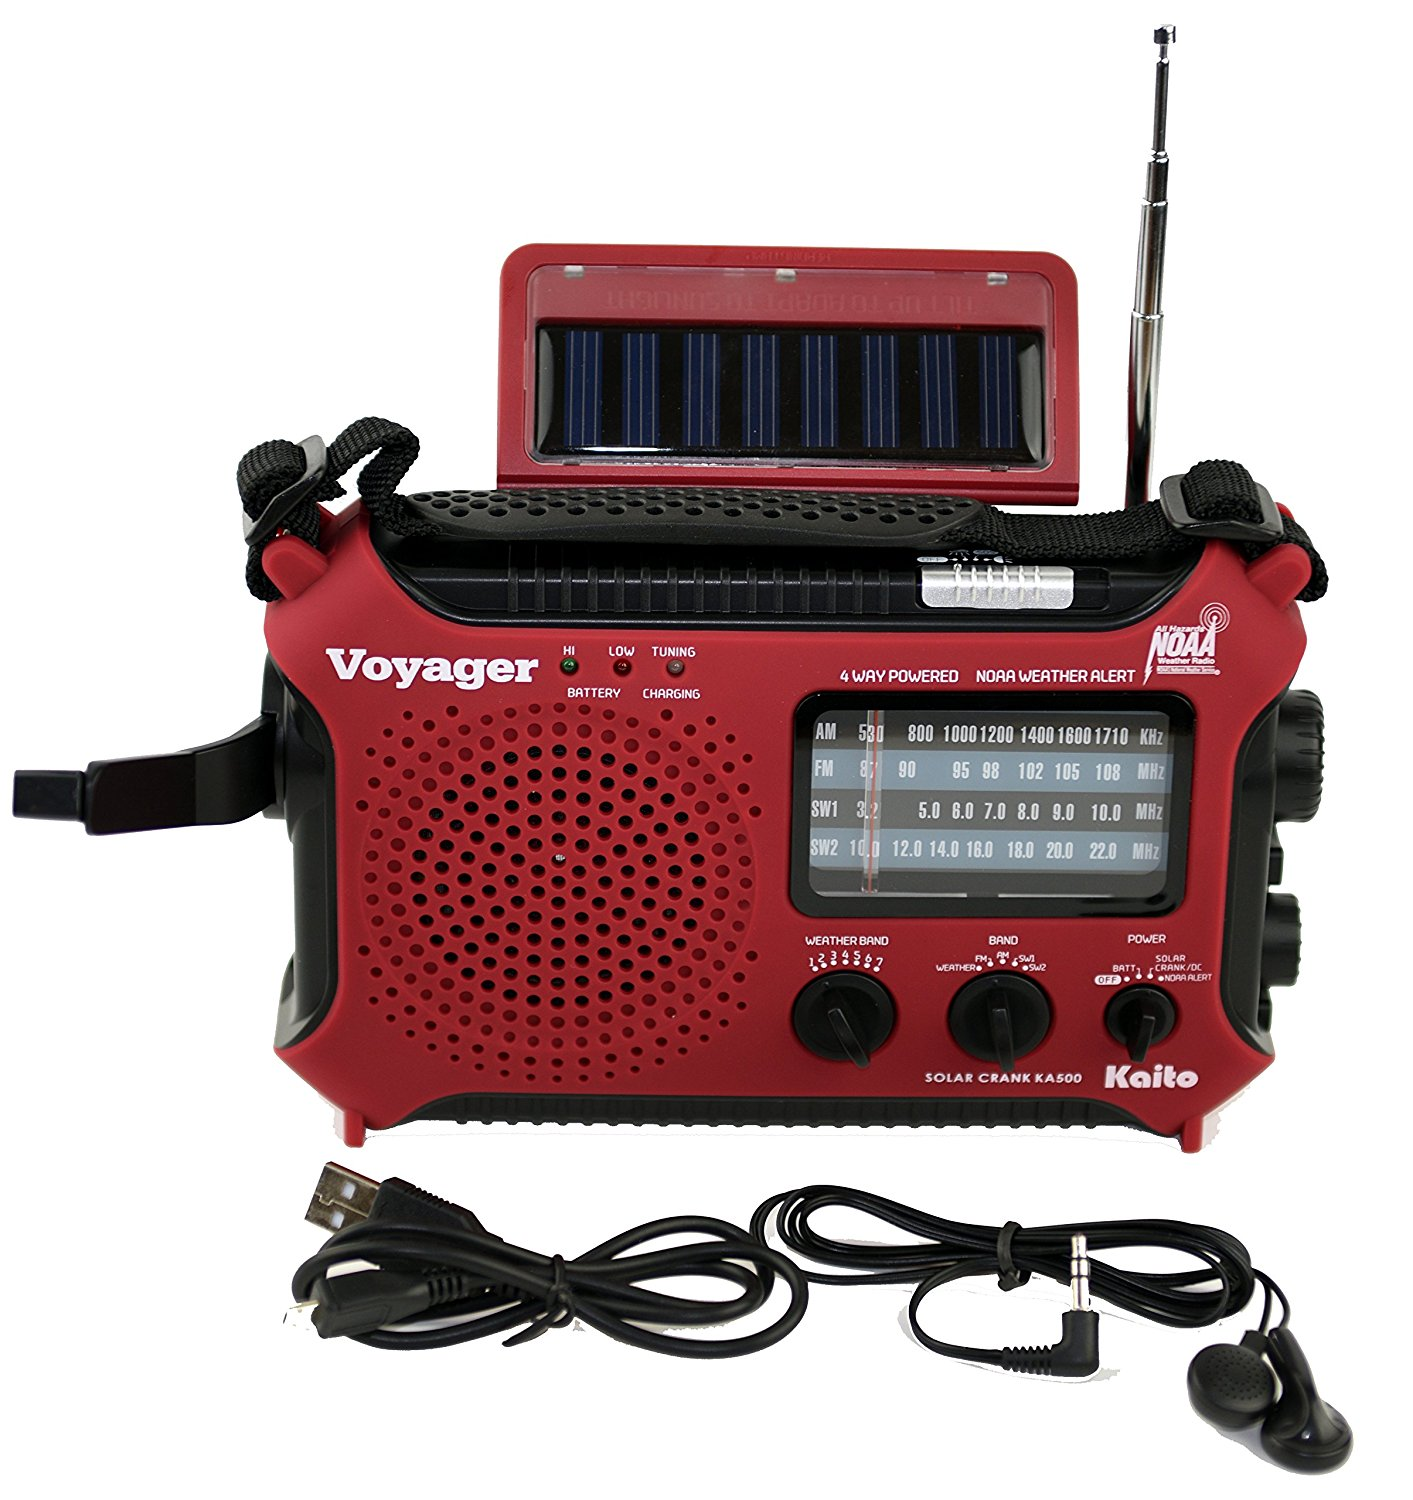 Kaito KA500 5-way Powered Emergency AM/FM/SW NOAA Weather Alert Radio with Solar Dynamo Crank Flashlight and Reading Lamp - Red